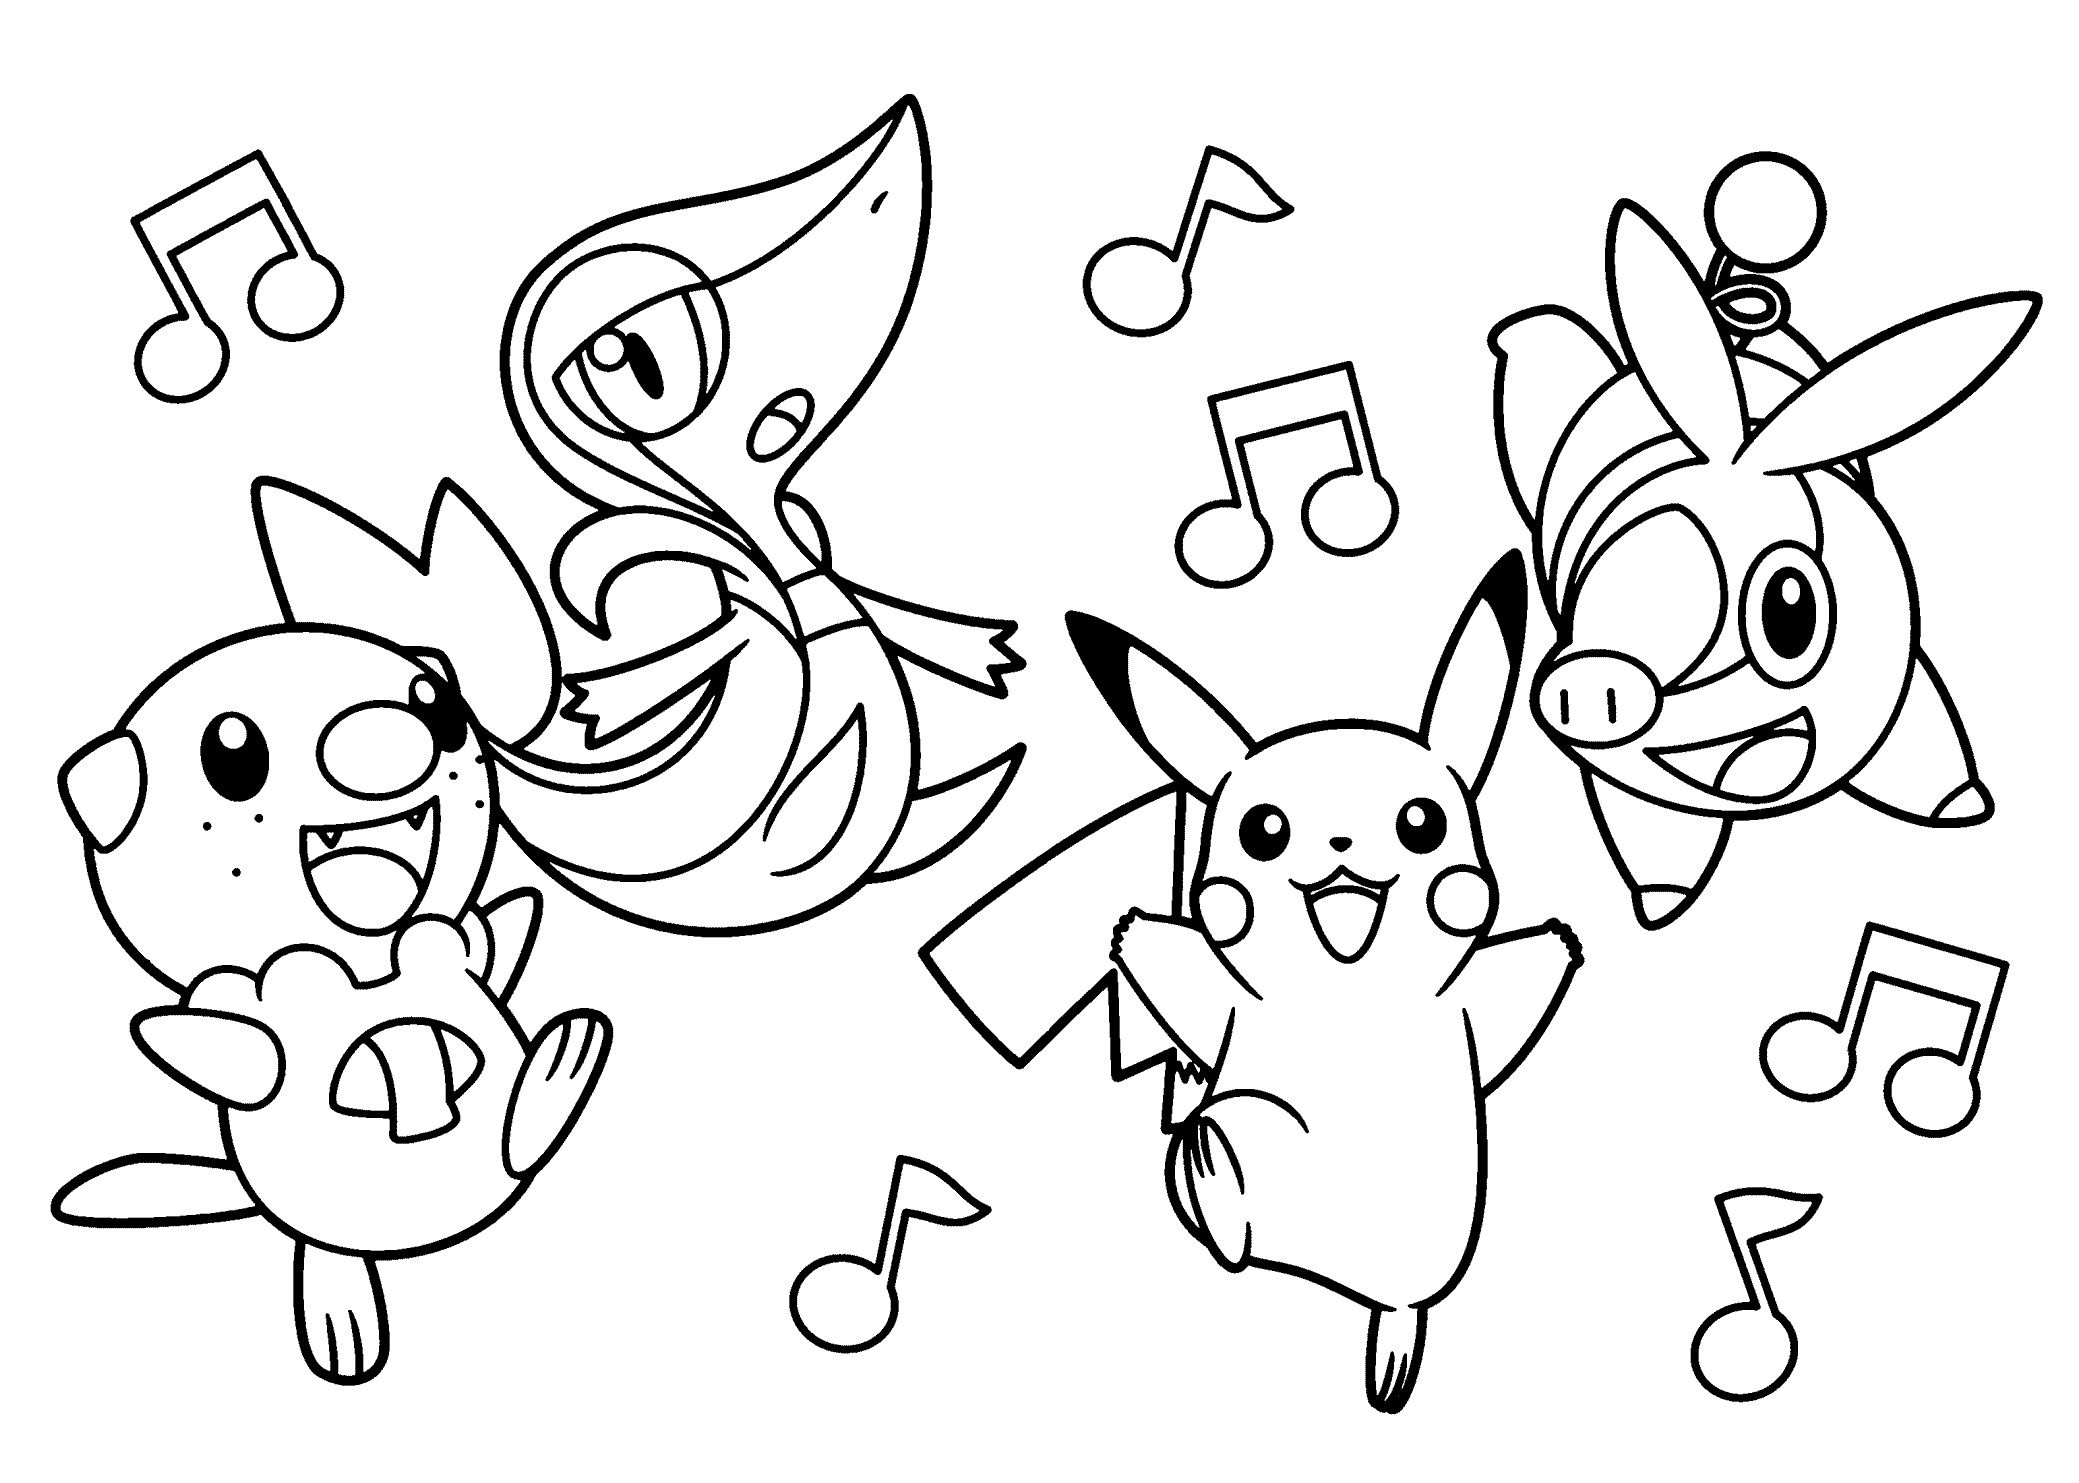 Free Printable Pokemon Coloring Pages Best Image To Print 19 Pokemon - Free Printable Pokemon Coloring Pages